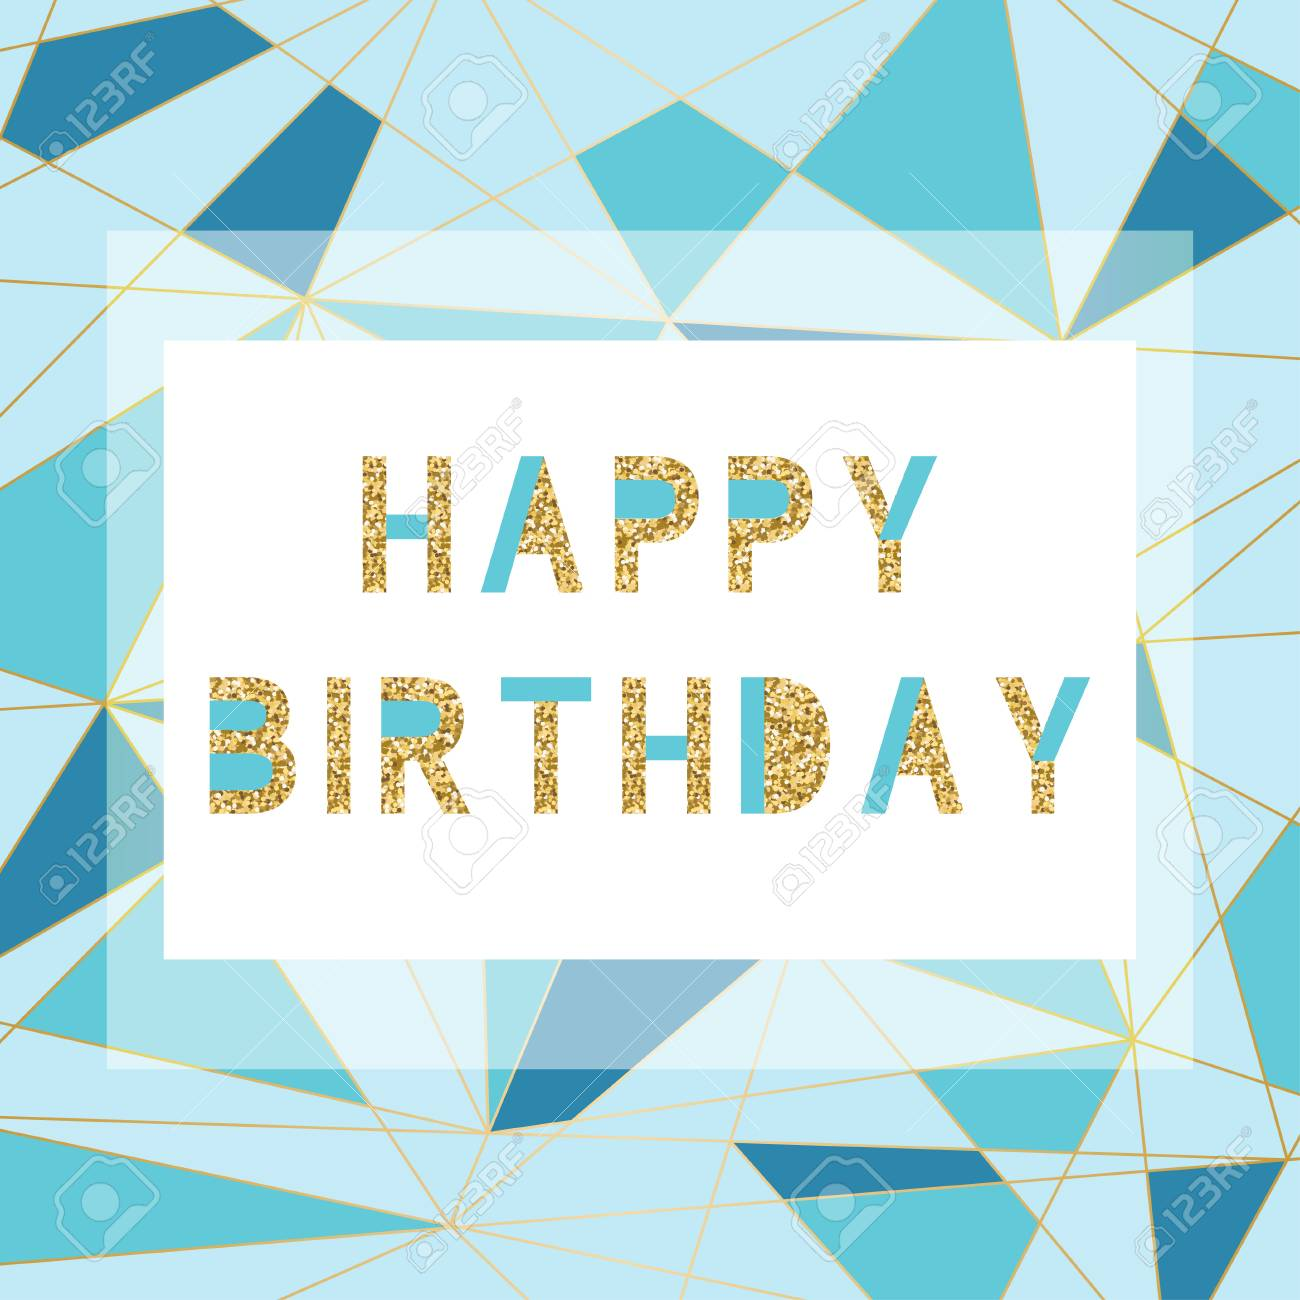 happy birthday card template in modern geometrical style. gold